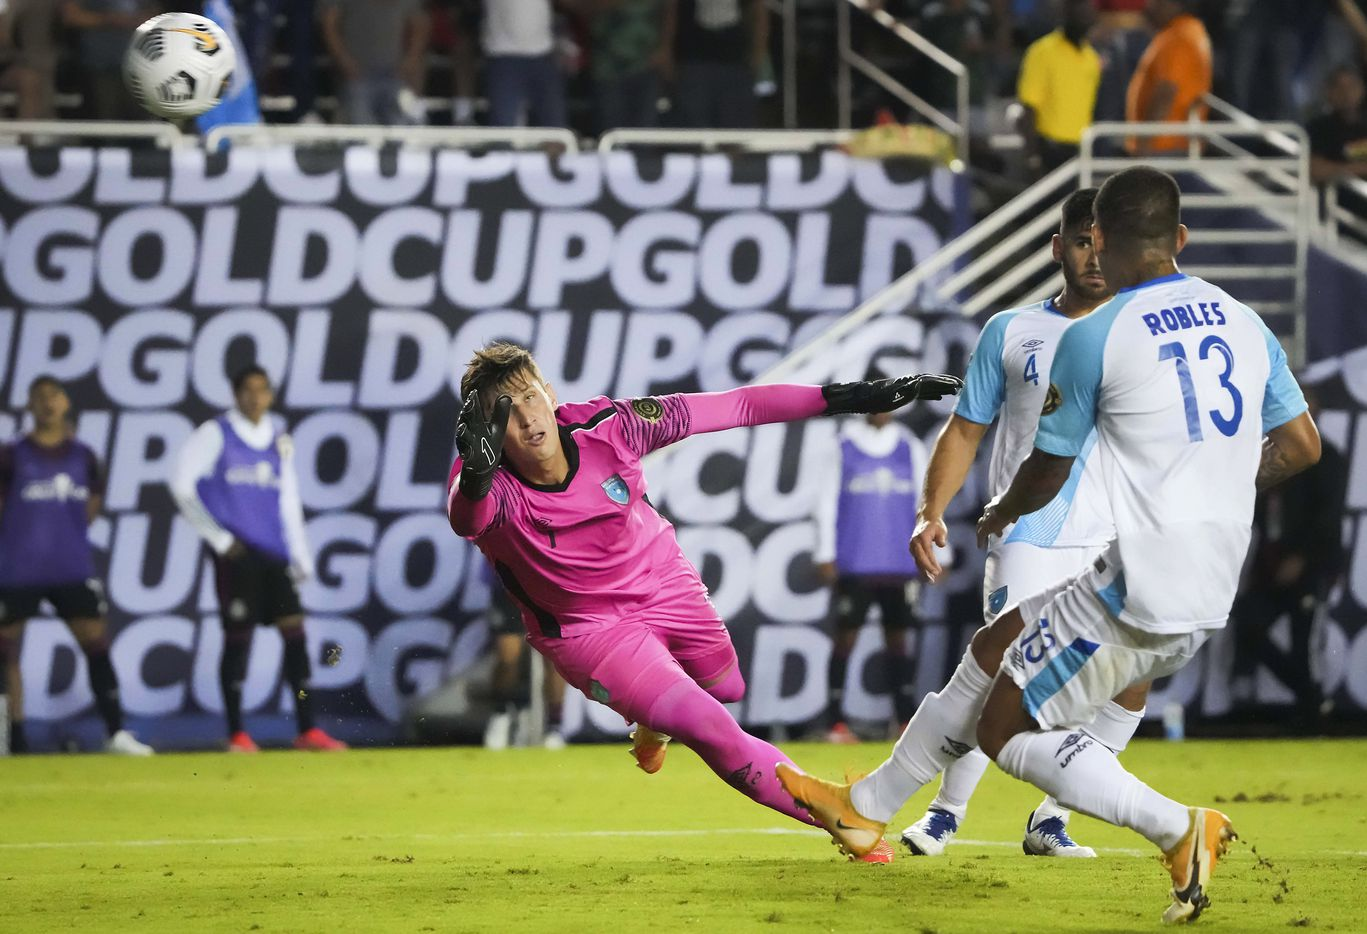 Guatemala goalkeeper Nicholas Hagen (1) can't make the play on a goal by Mexico forward Rogelio Funes Mori during the second half of a CONCACAF Gold Cup Group A soccer match at the Cotton Bowl on Wednesday, July 14, 2021, in Dallas.